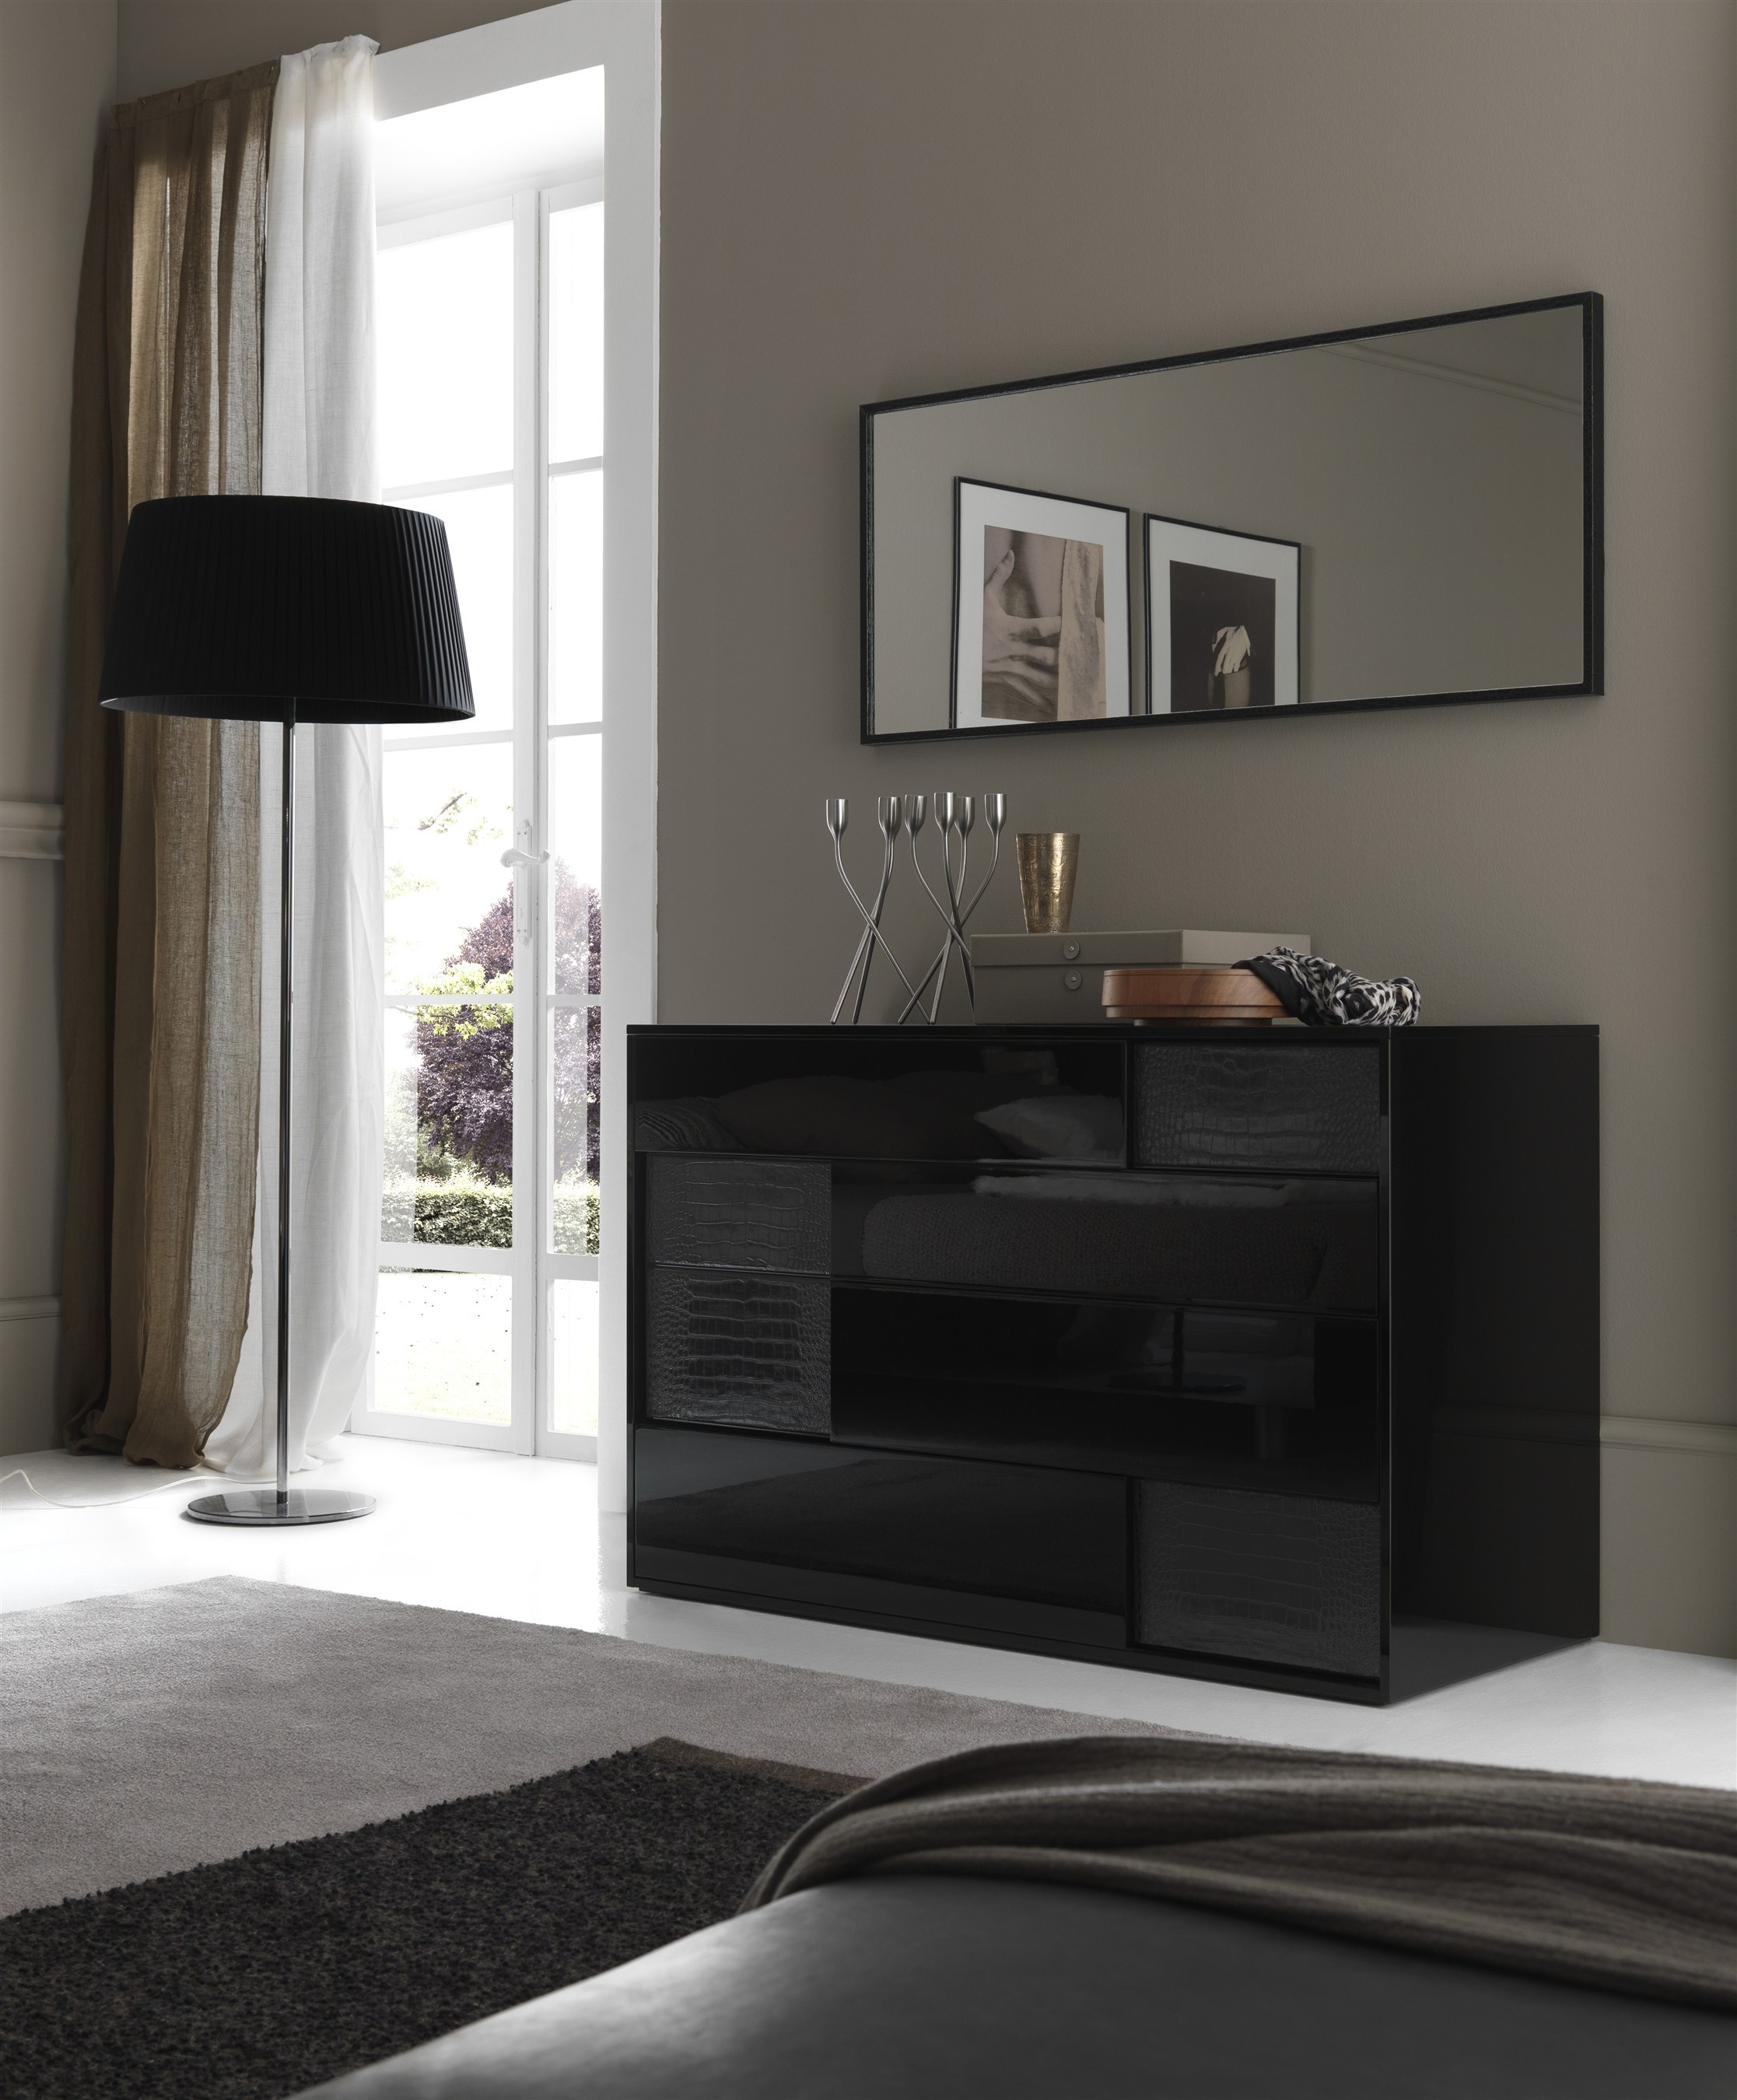 Contemporary Bedroom Set London Black By Acme Furniture: Funky High Gloss Bedroom Furniture Design